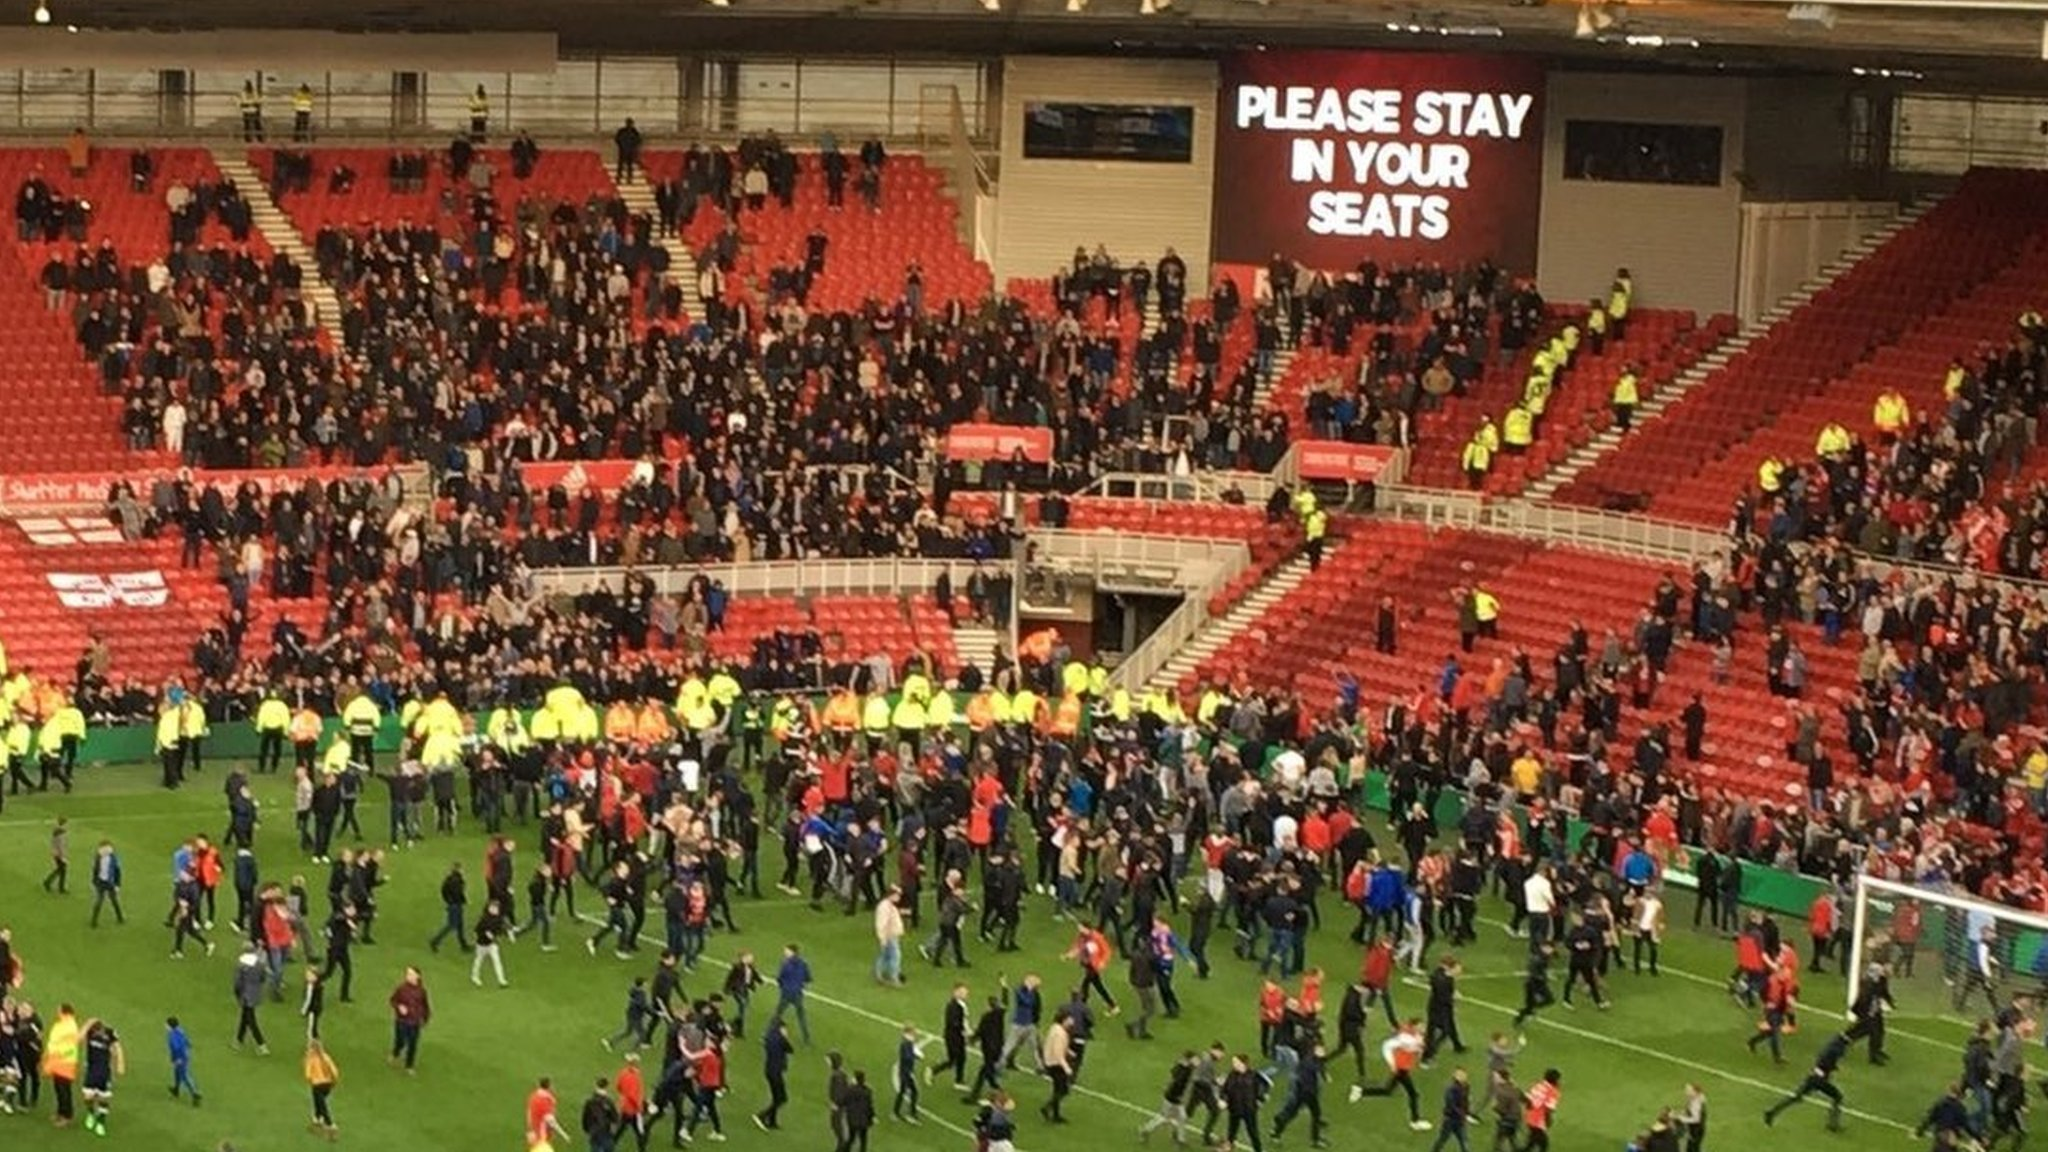 Middlesbrough v Millwall trouble: 22 fans identified after investigation